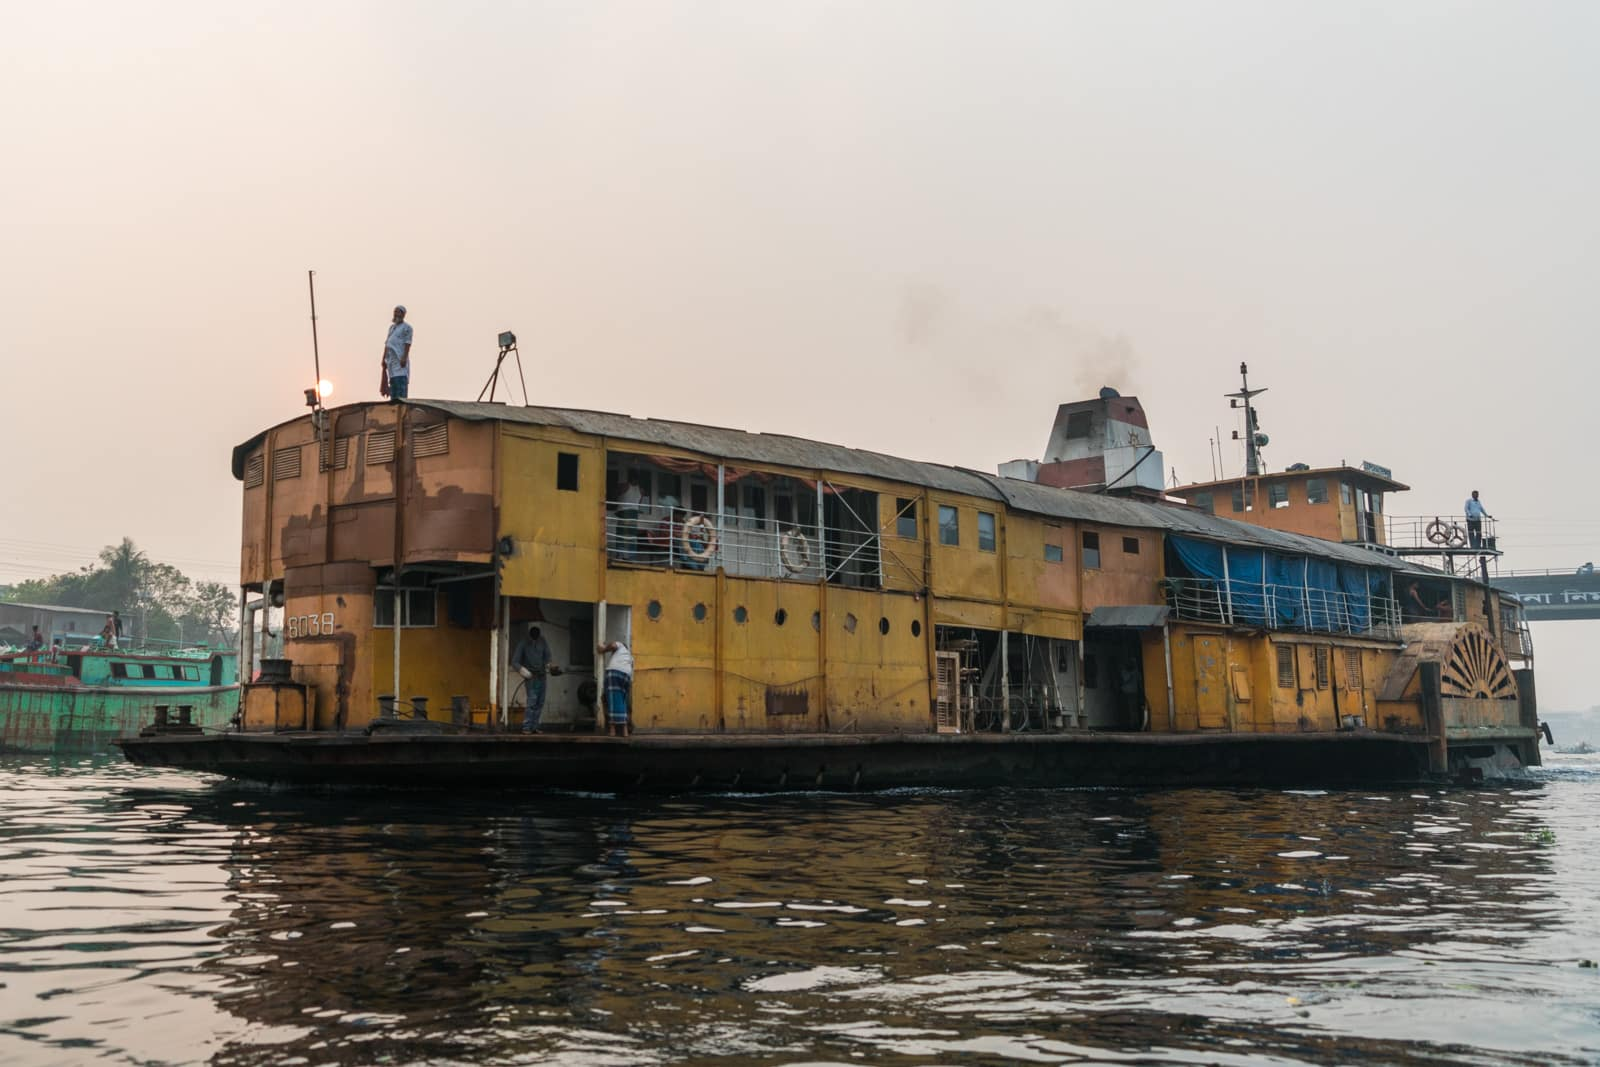 Launches from Hularhat to Dhaka, Bangladesh - Rocket Steamer pulling into Dhaka River Port - Lost With Purpose travel blog